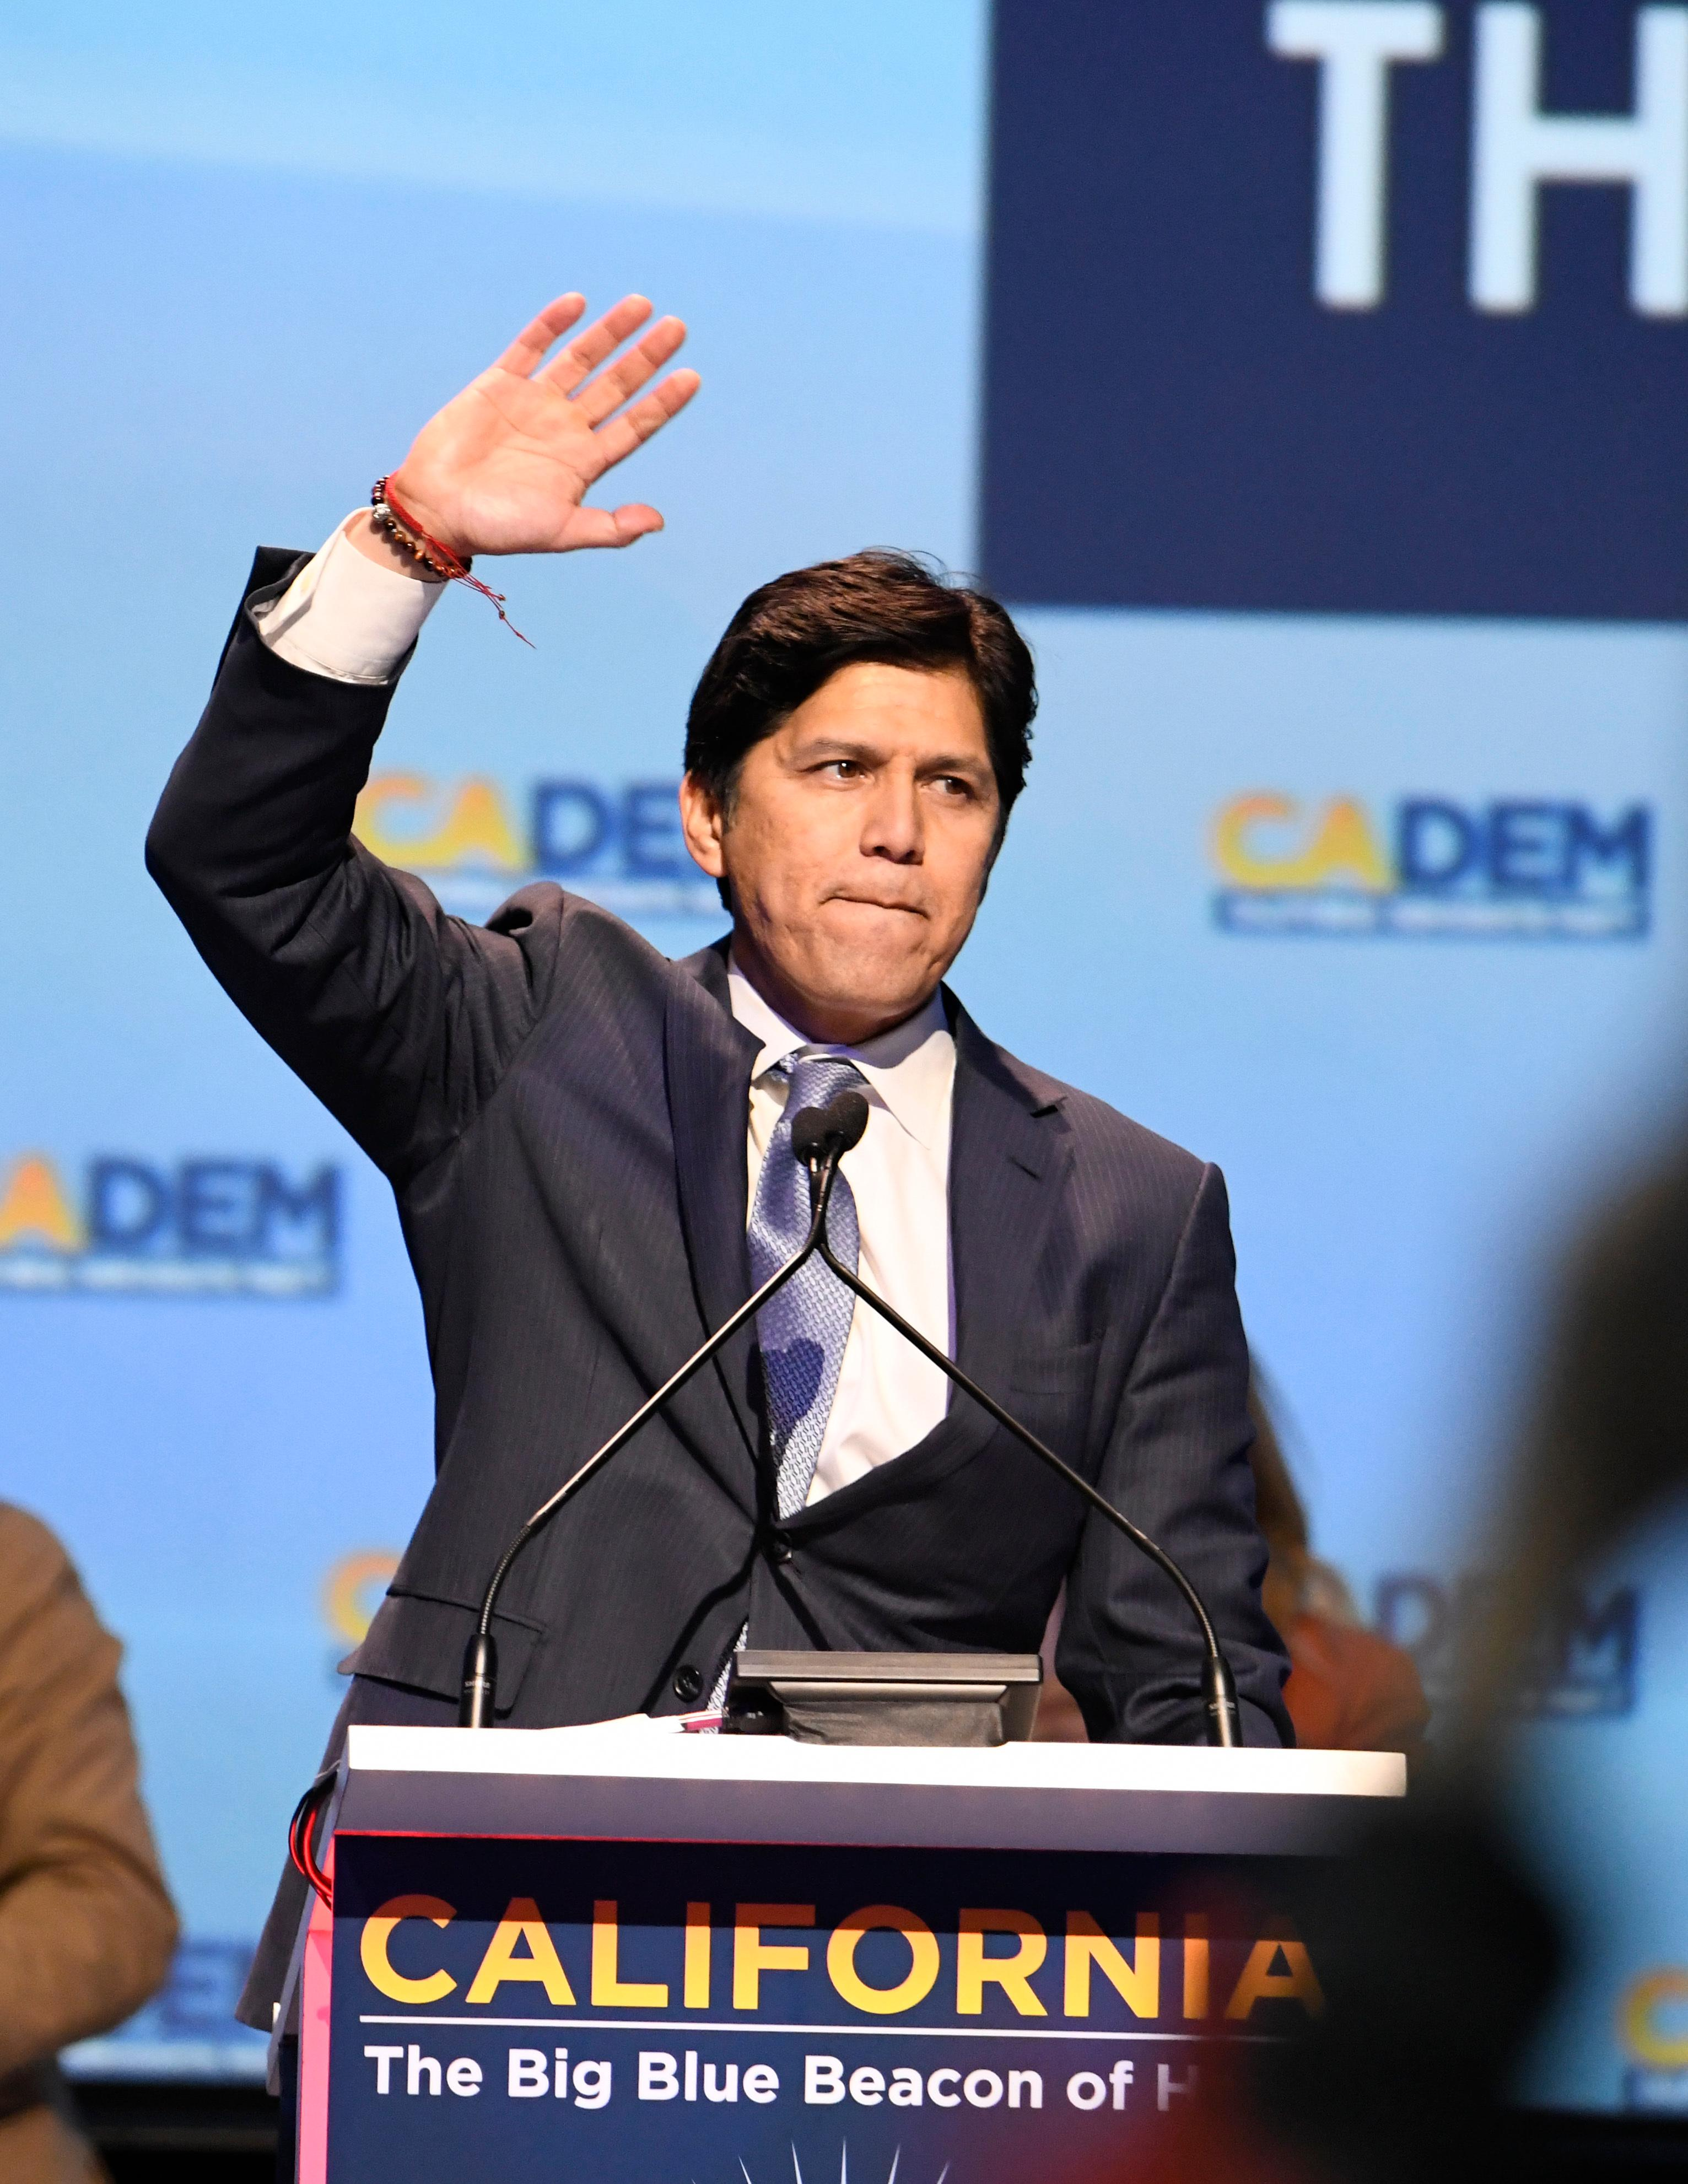 U.S. Senate candidate, Senate President Pro Tem Kevin de Leon, D- Los Angeles, speaks at the 2018 California Democrats State Convention Saturday, Feb. 24, 2018, in San Diego. (AP Photo/Denis Poroy)